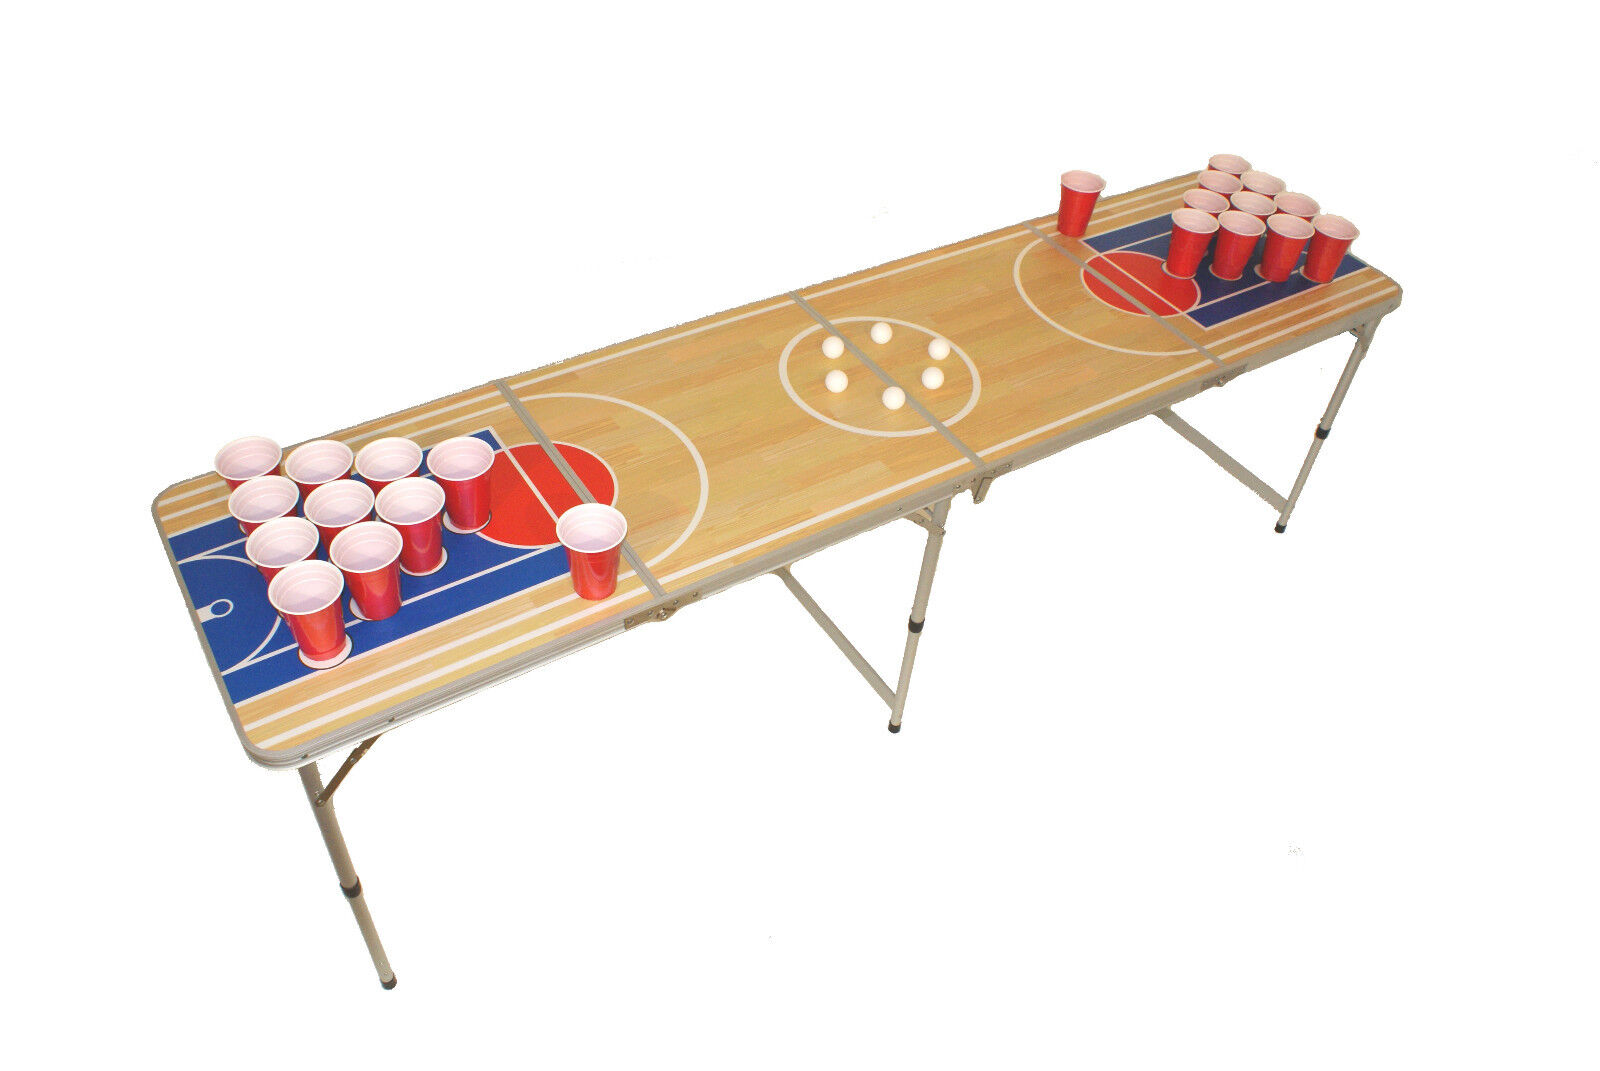 Bière Pong Table, Beer Pong Table Incl. Ensemble de règles, 6 balles et 22 Cups, 2